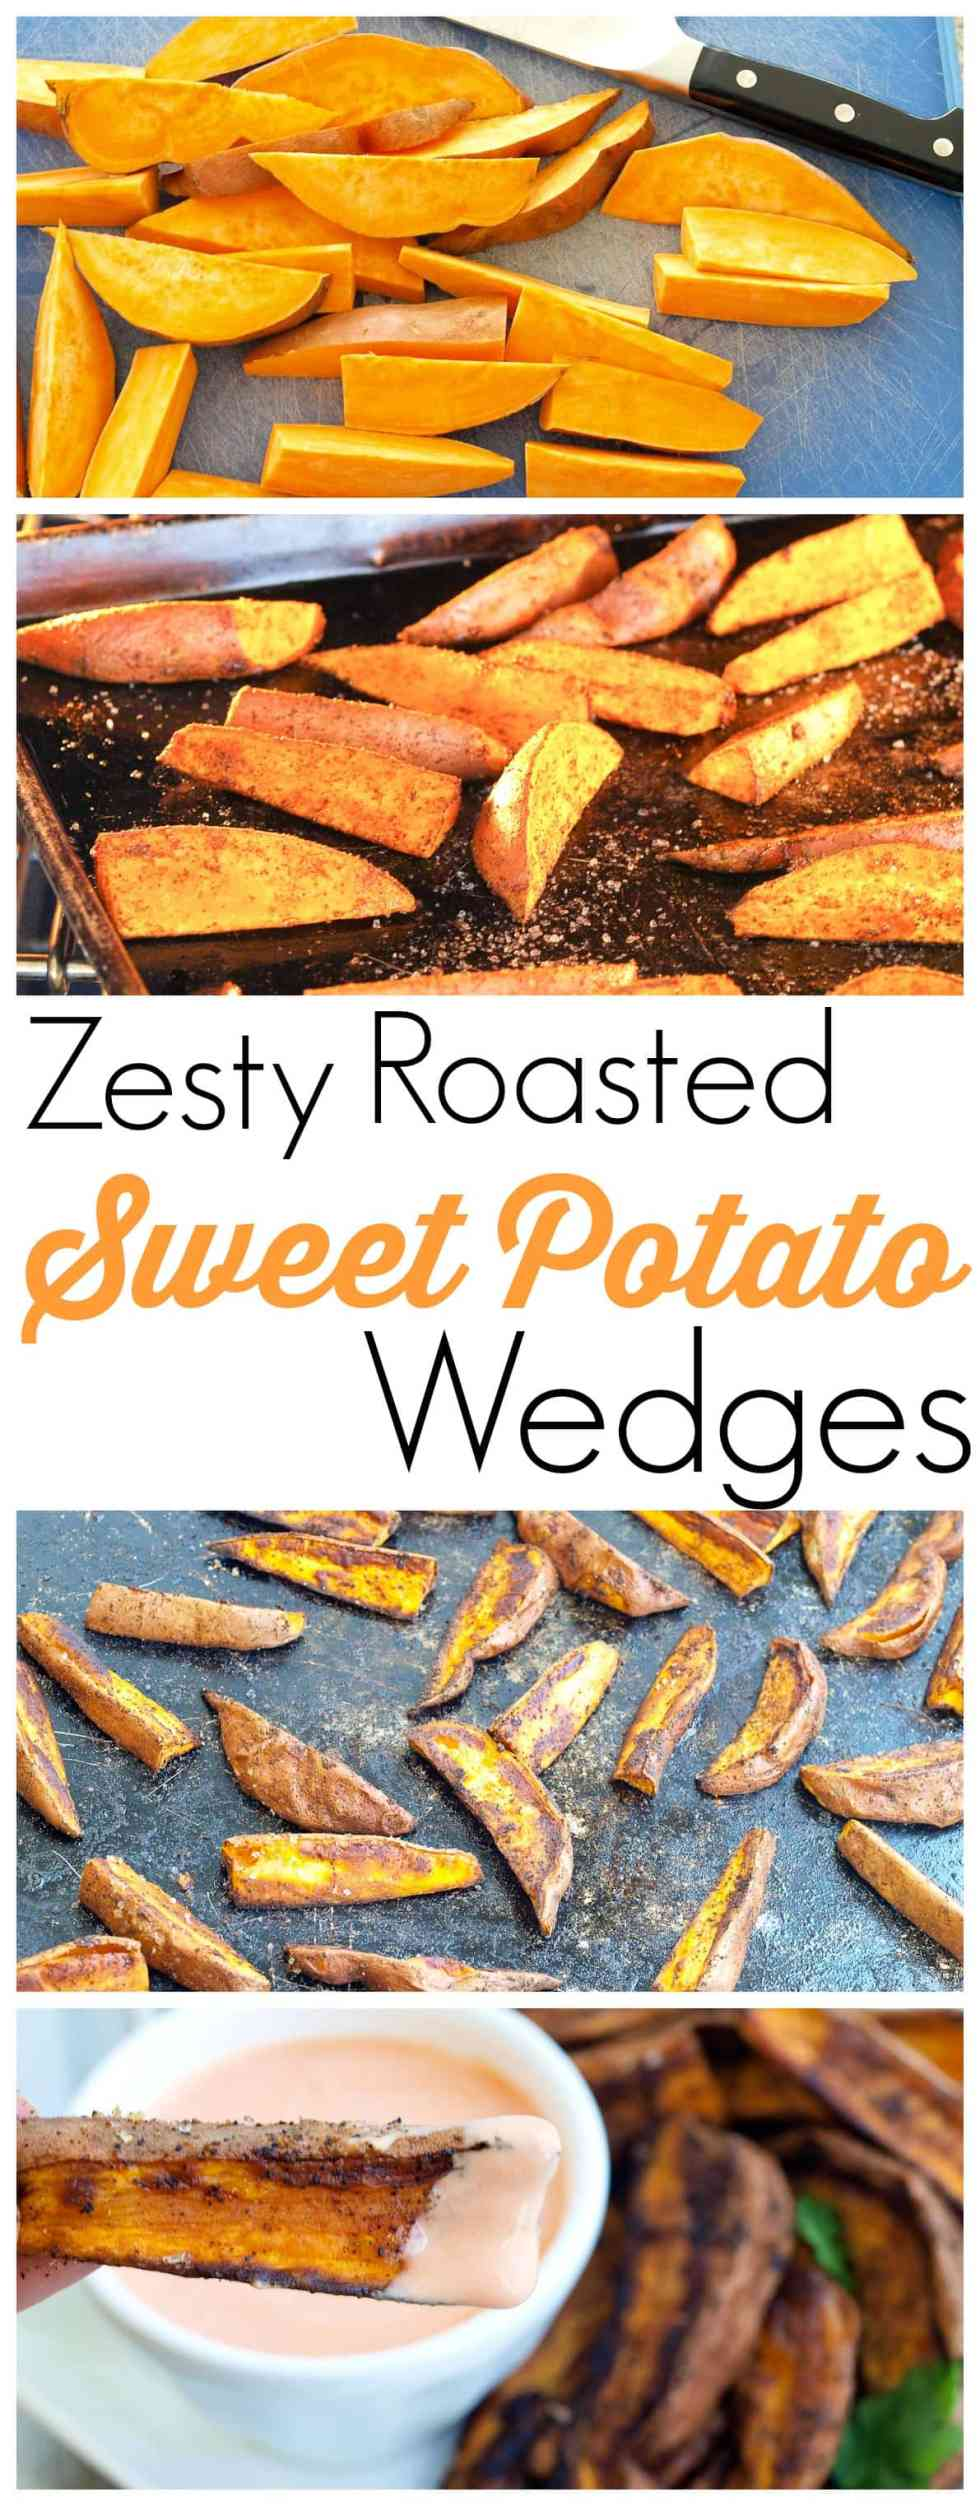 The best roasted sweet potato recipe of your life! Lots of flavor!! The Spicy Yogurt Dipping Sauce is perfection. #healthysidedish #recipe